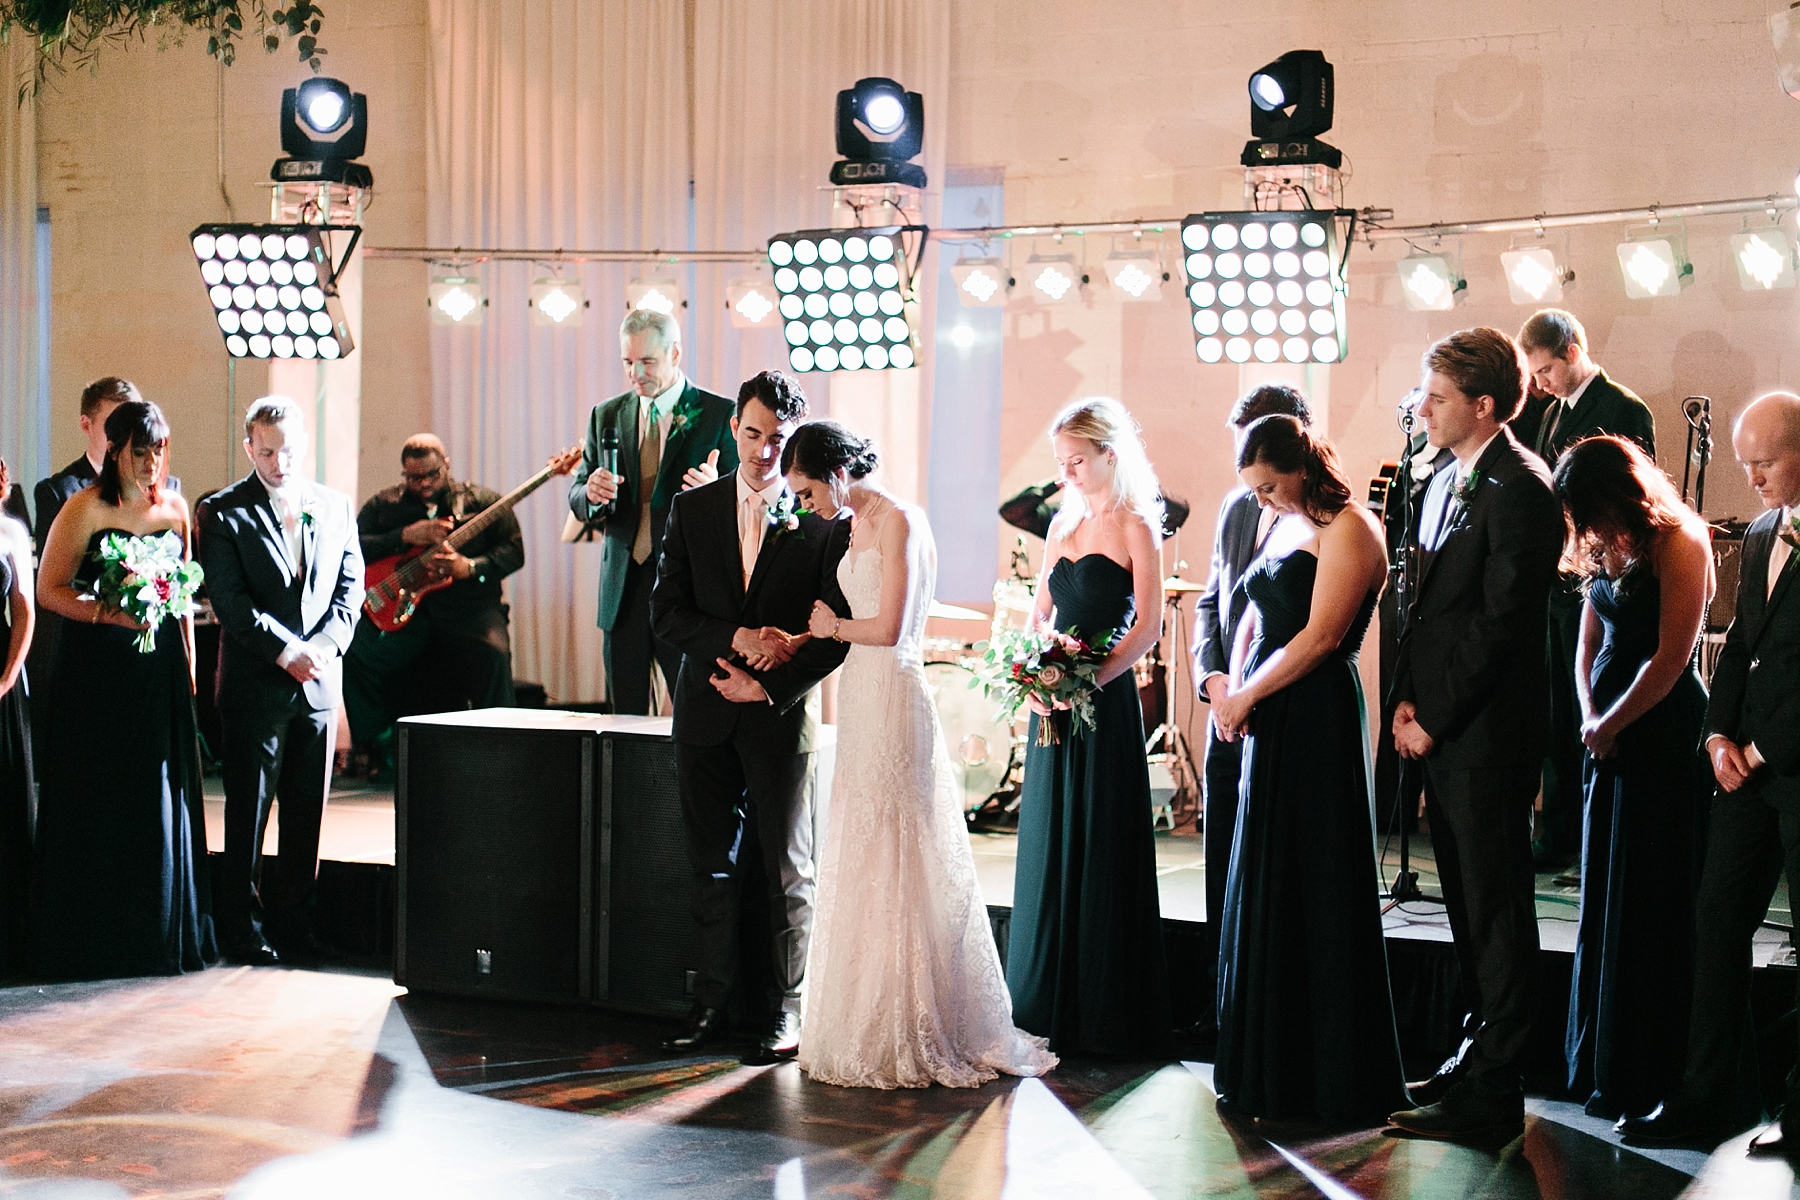 Emily + Caleb _ an elegant, intentional, industrial style wedding with navy + gold accents at 6500 in Dallas, TX by North Texas Wedding Photographer Rachel Meagan Photography _ 142